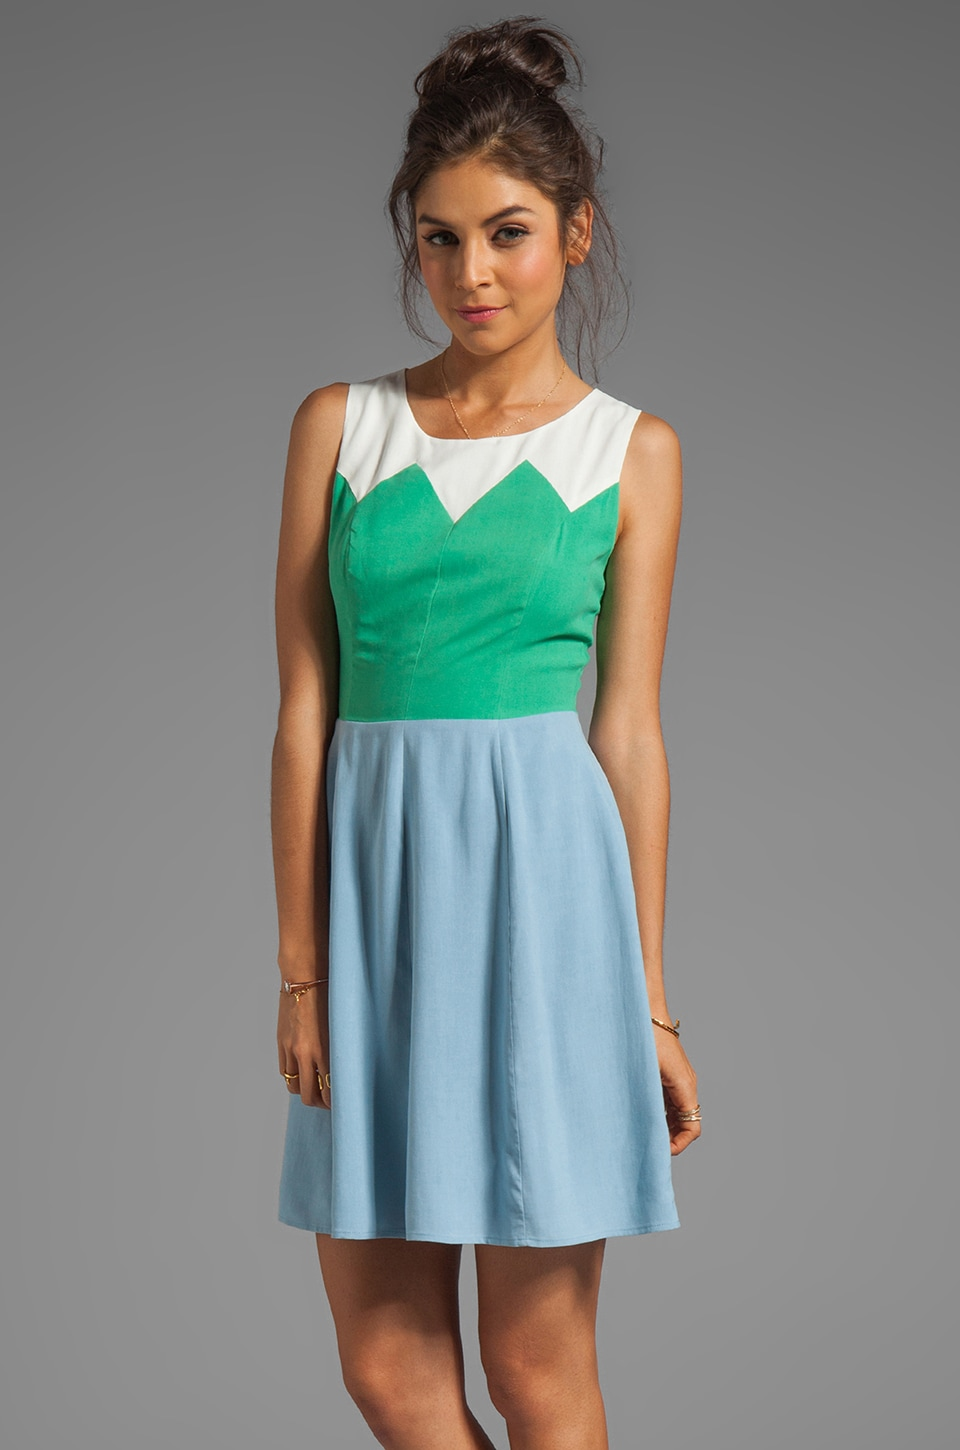 harlyn Blocked Fit & Flare Dress in Vintage Blue/Mint